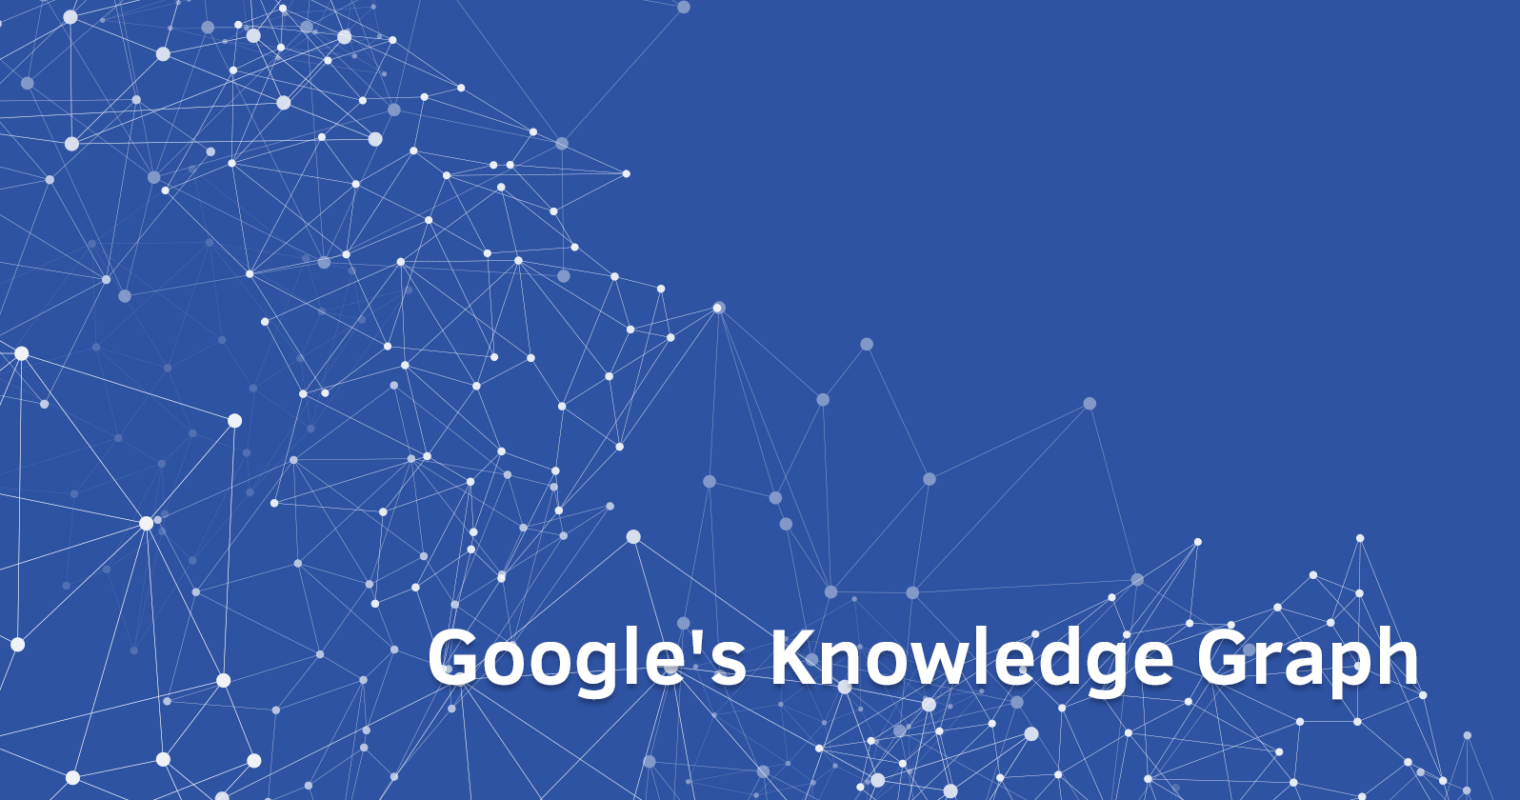 How to Maximize Your Reach Using Google's Knowledge Graph